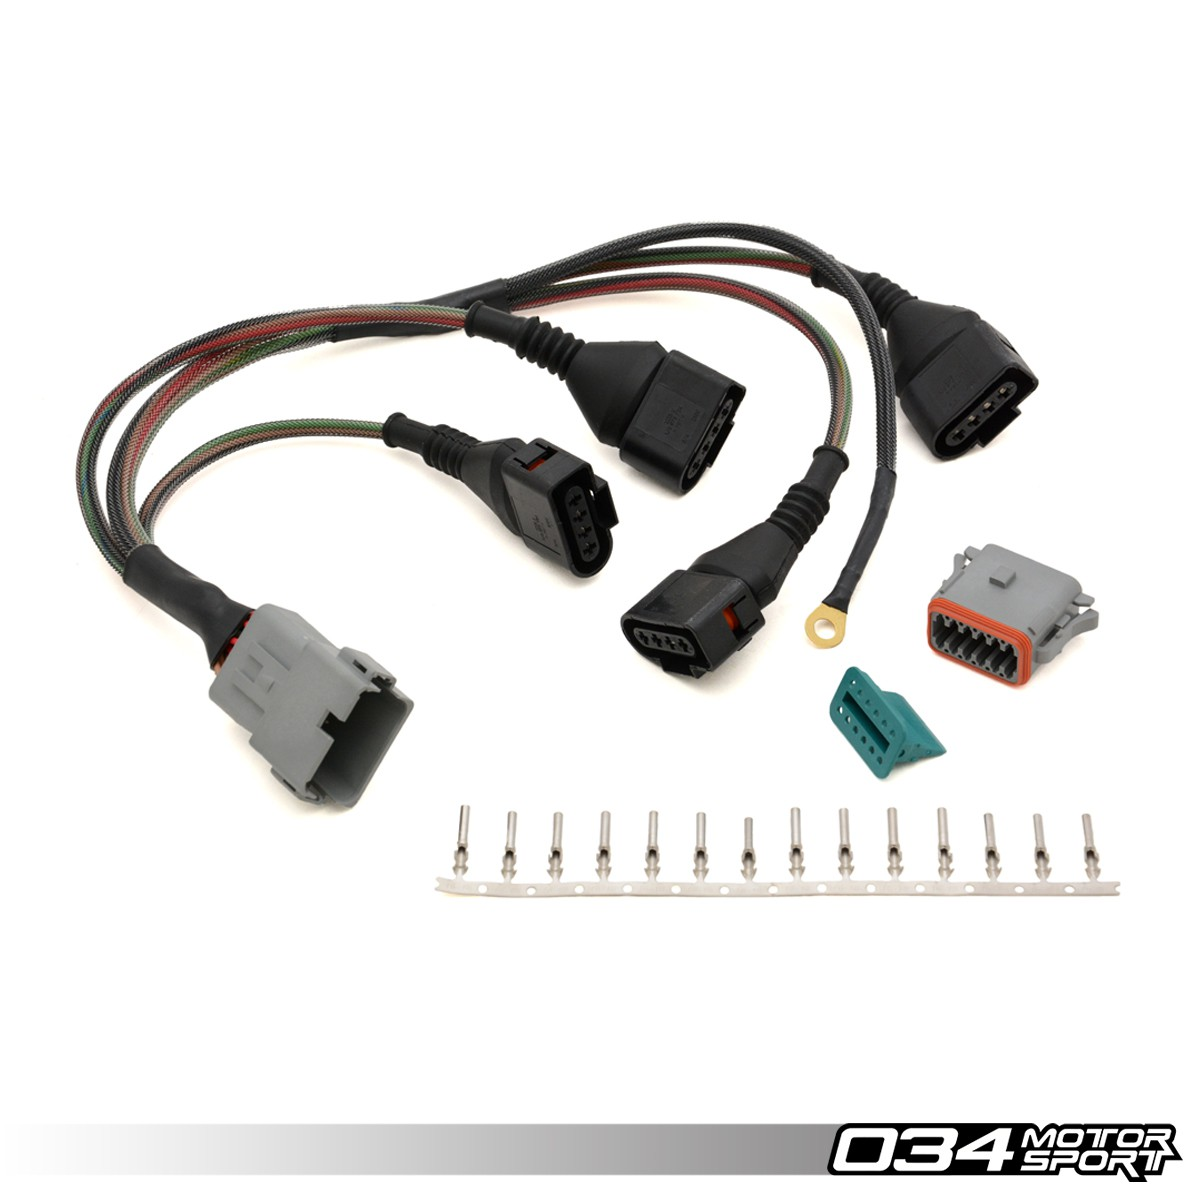 repair update harness audi volkswagen 18t with 4 wire coils 034motorsport 034 701 0004 2 repair update harness, audi volkswagen 1 8t with 4 wire coils  at n-0.co